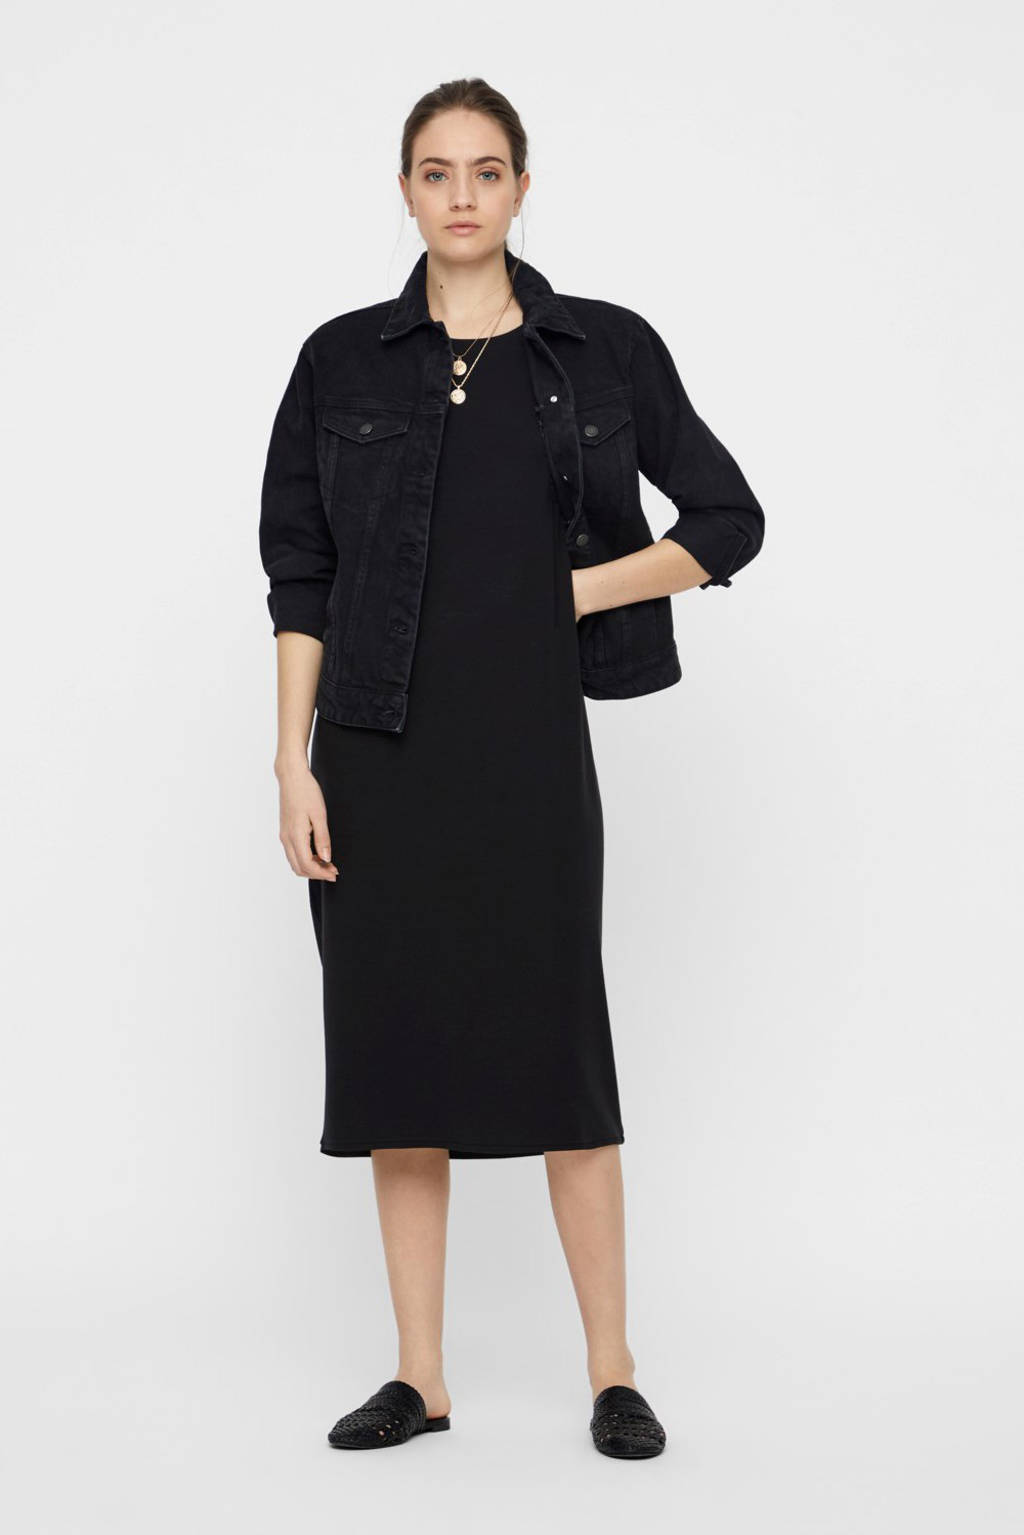 AWARE by VERO MODA jersey jurk zwart, Zwart